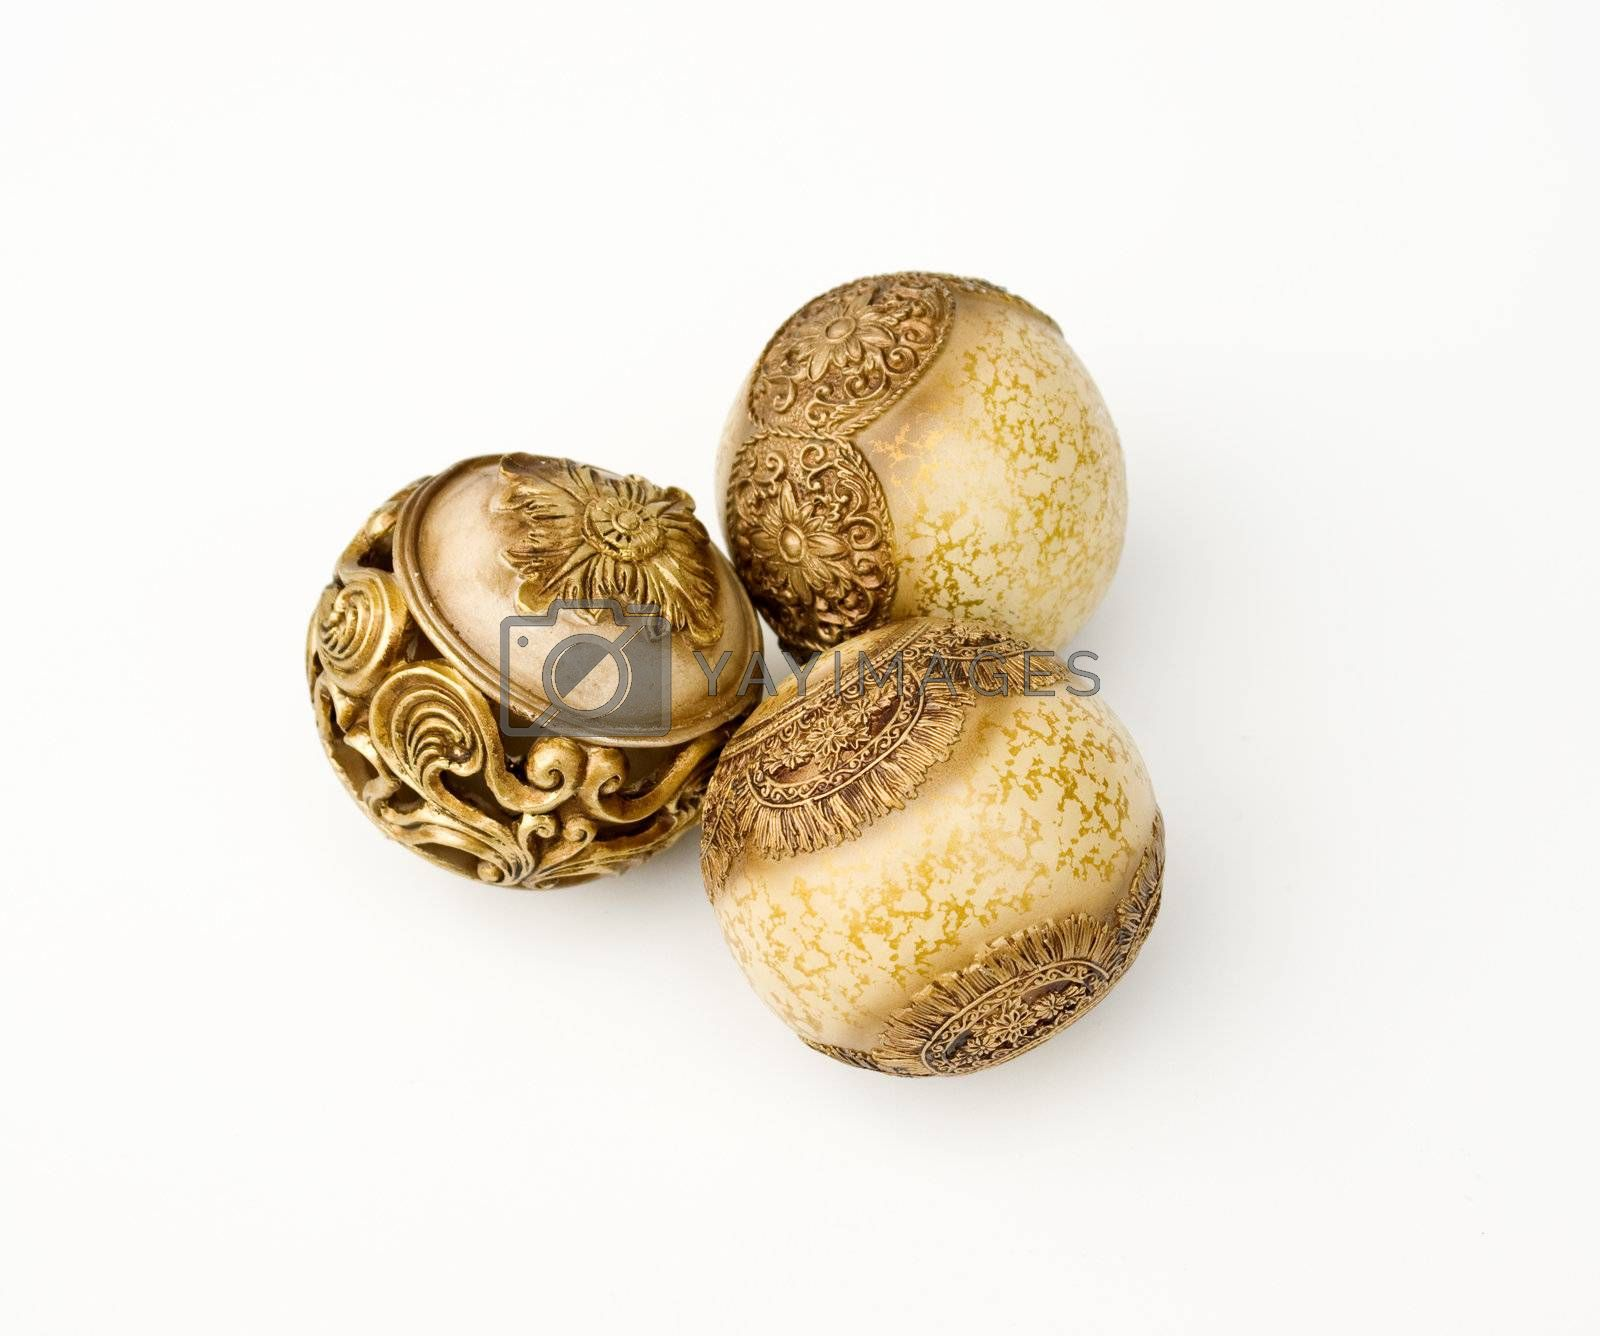 gold classic spheres on white background. decorative elements